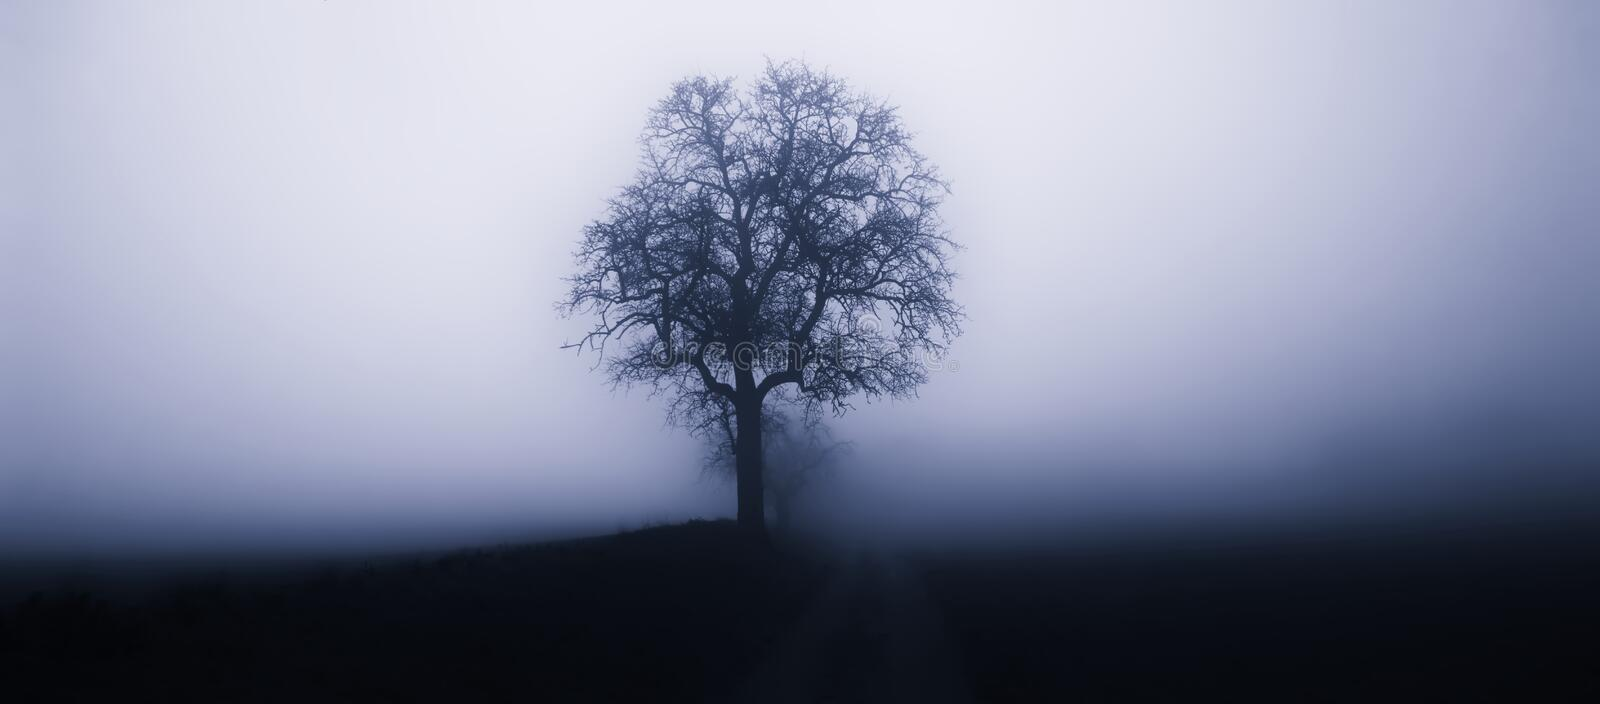 Isolated tree in fog surrounded by mysterious gloomy landscape. Rain,mist,road,negative space for text, minimalistic composition,late autumn,South Moravia stock image